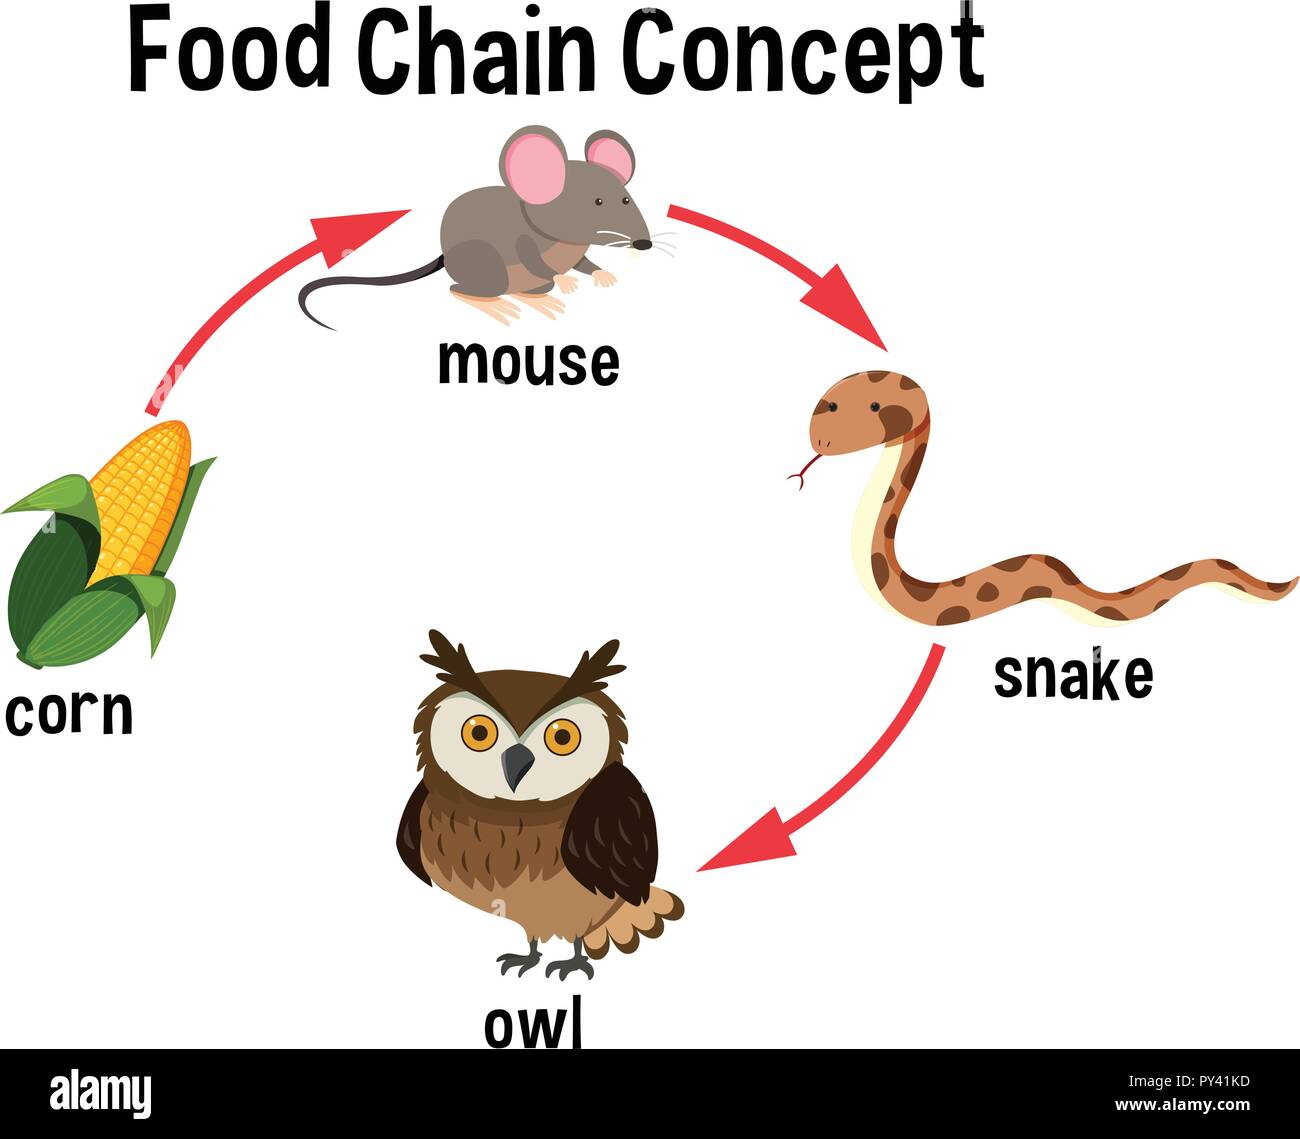 Food Chain concept diagram illustration Stock Vector Image & Art - AlamyAlamy